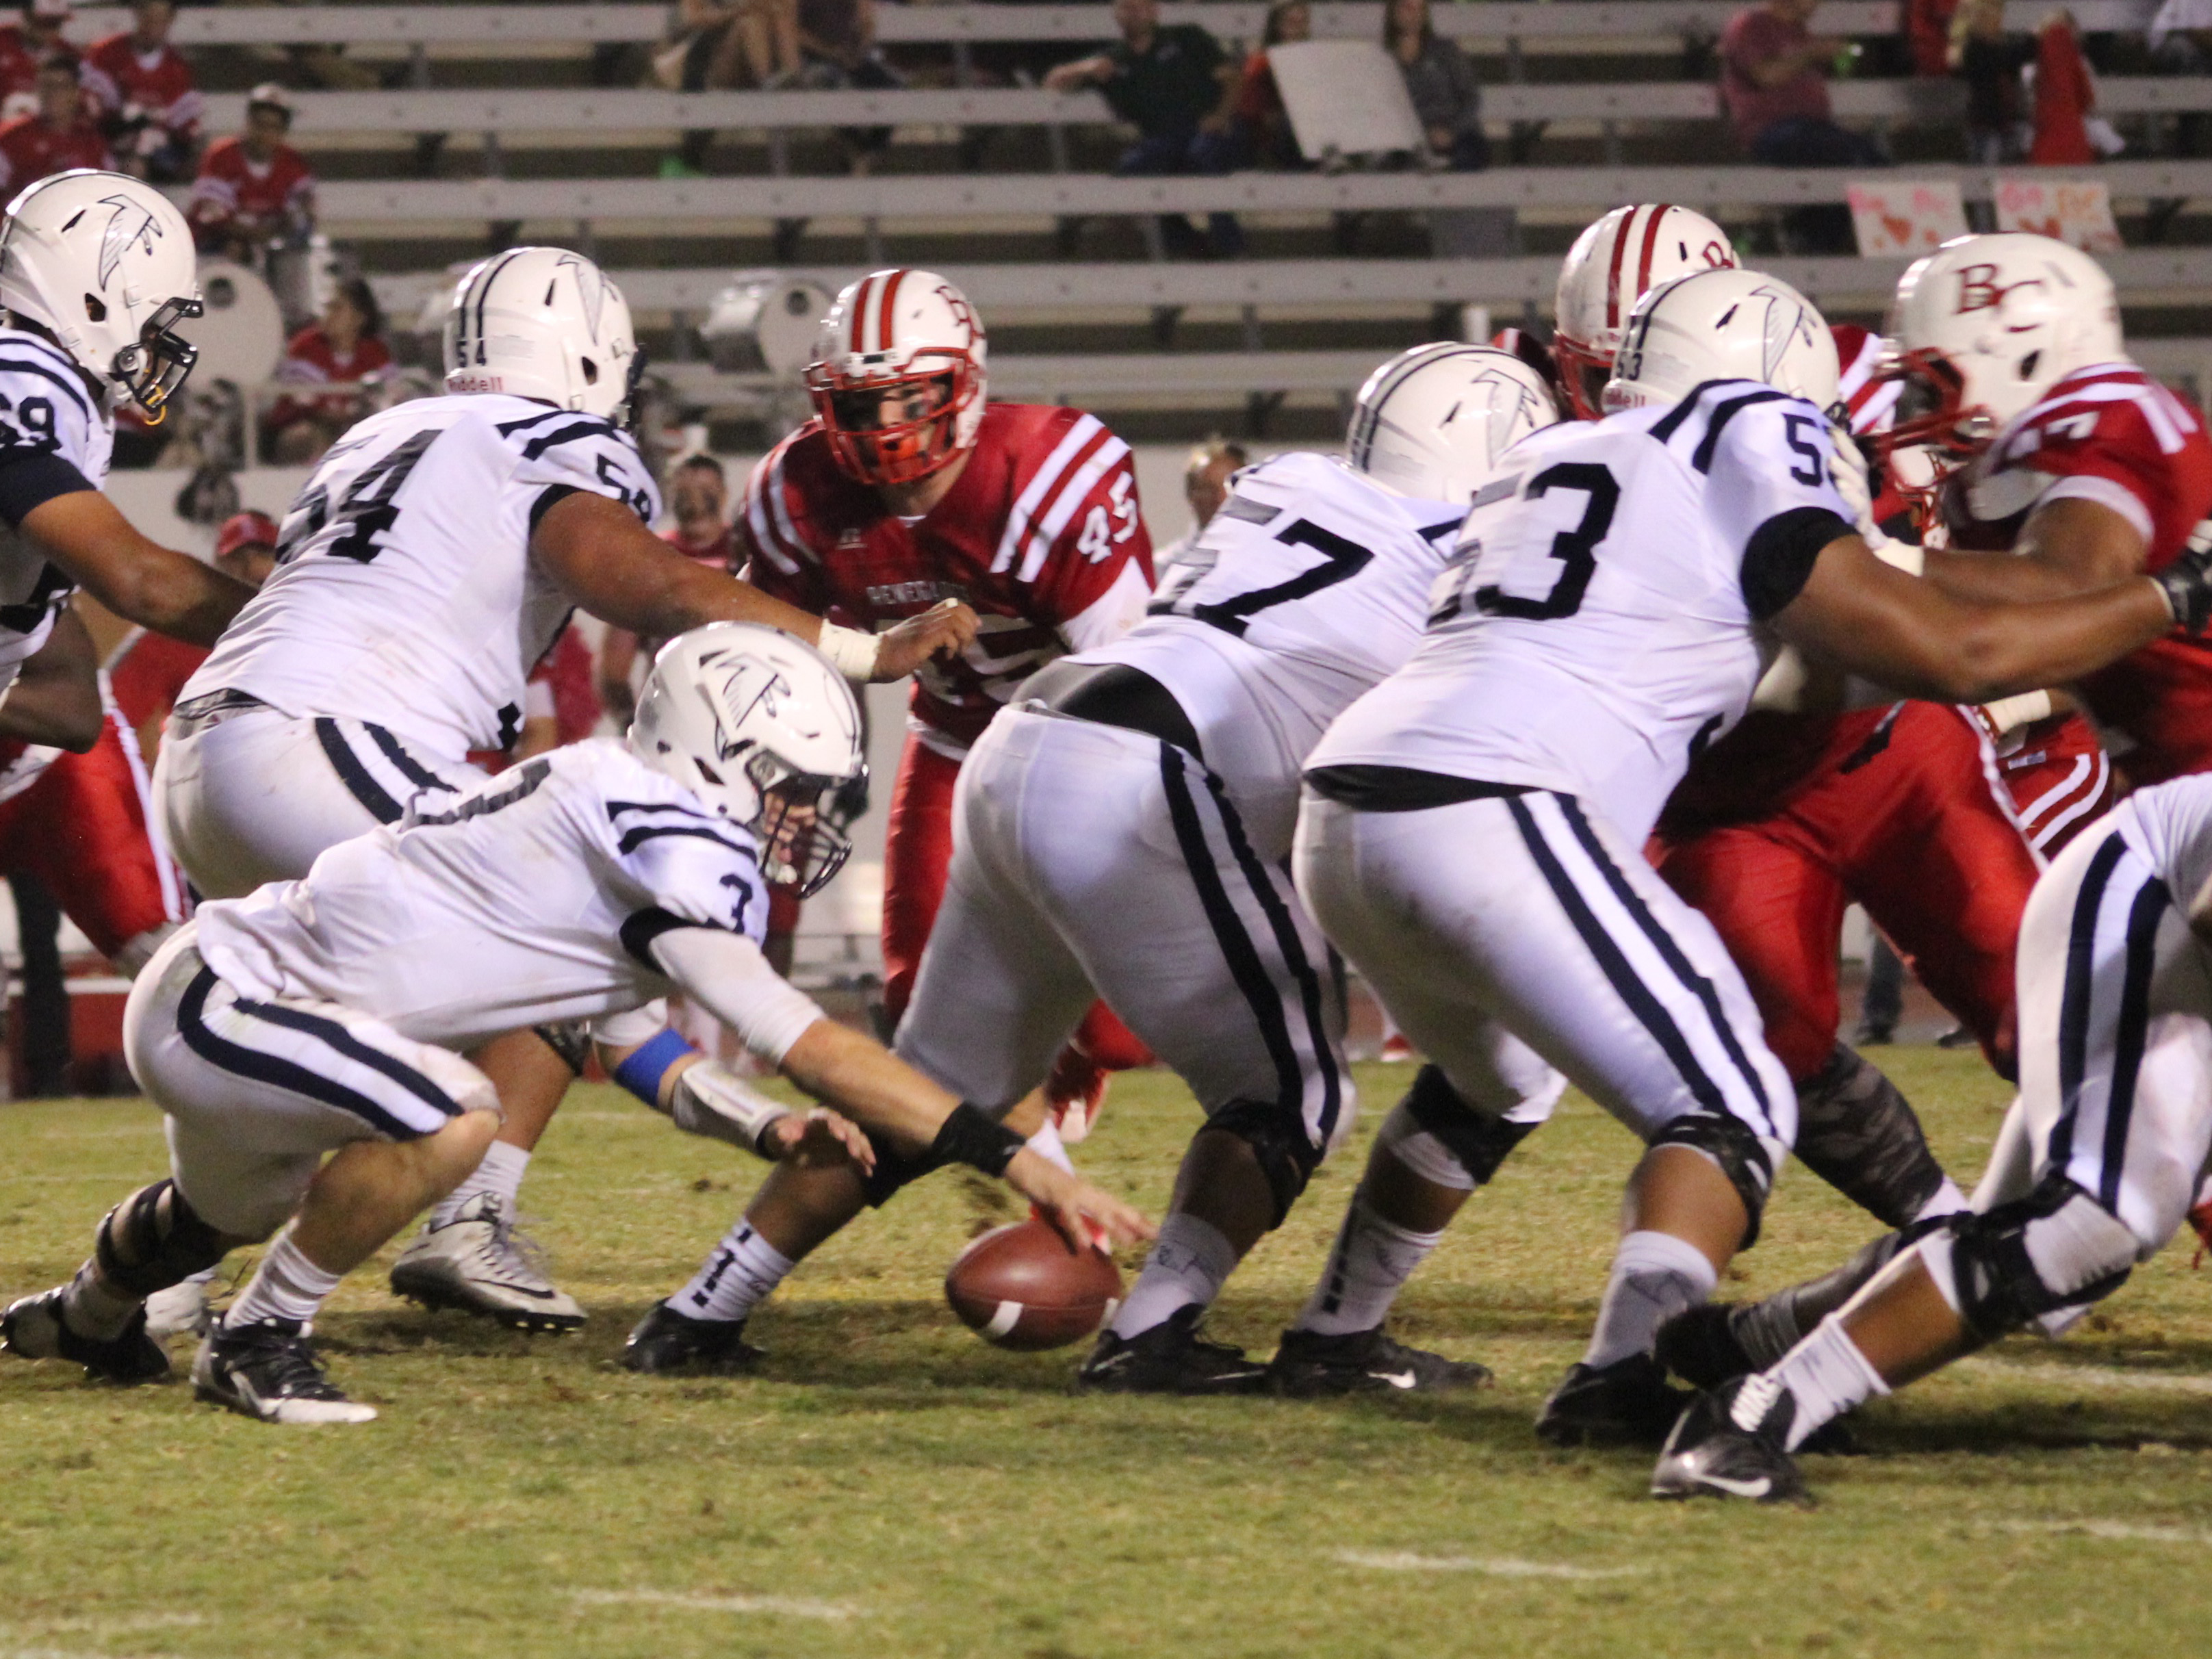 Mental mistakes lead Bakersfield to 28-21 win over Cerritos